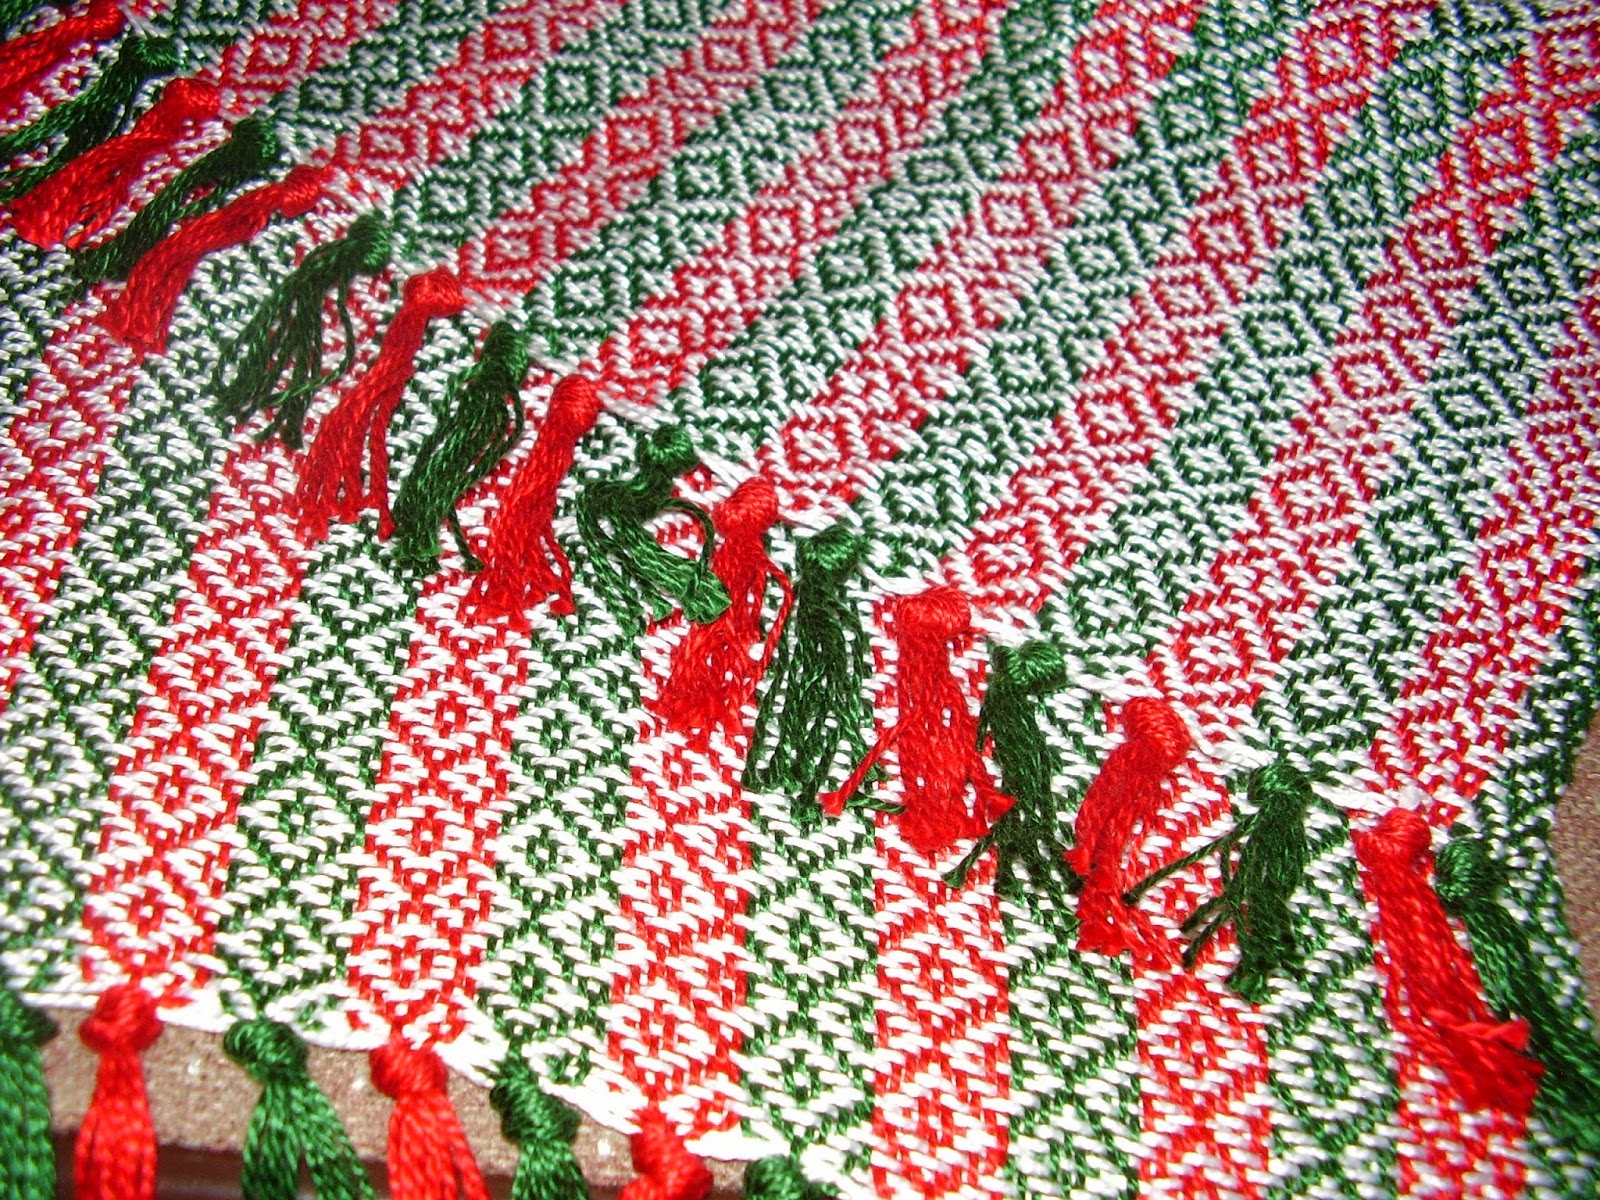 Red, green and white table runner in Finnish Birdseye pattern.